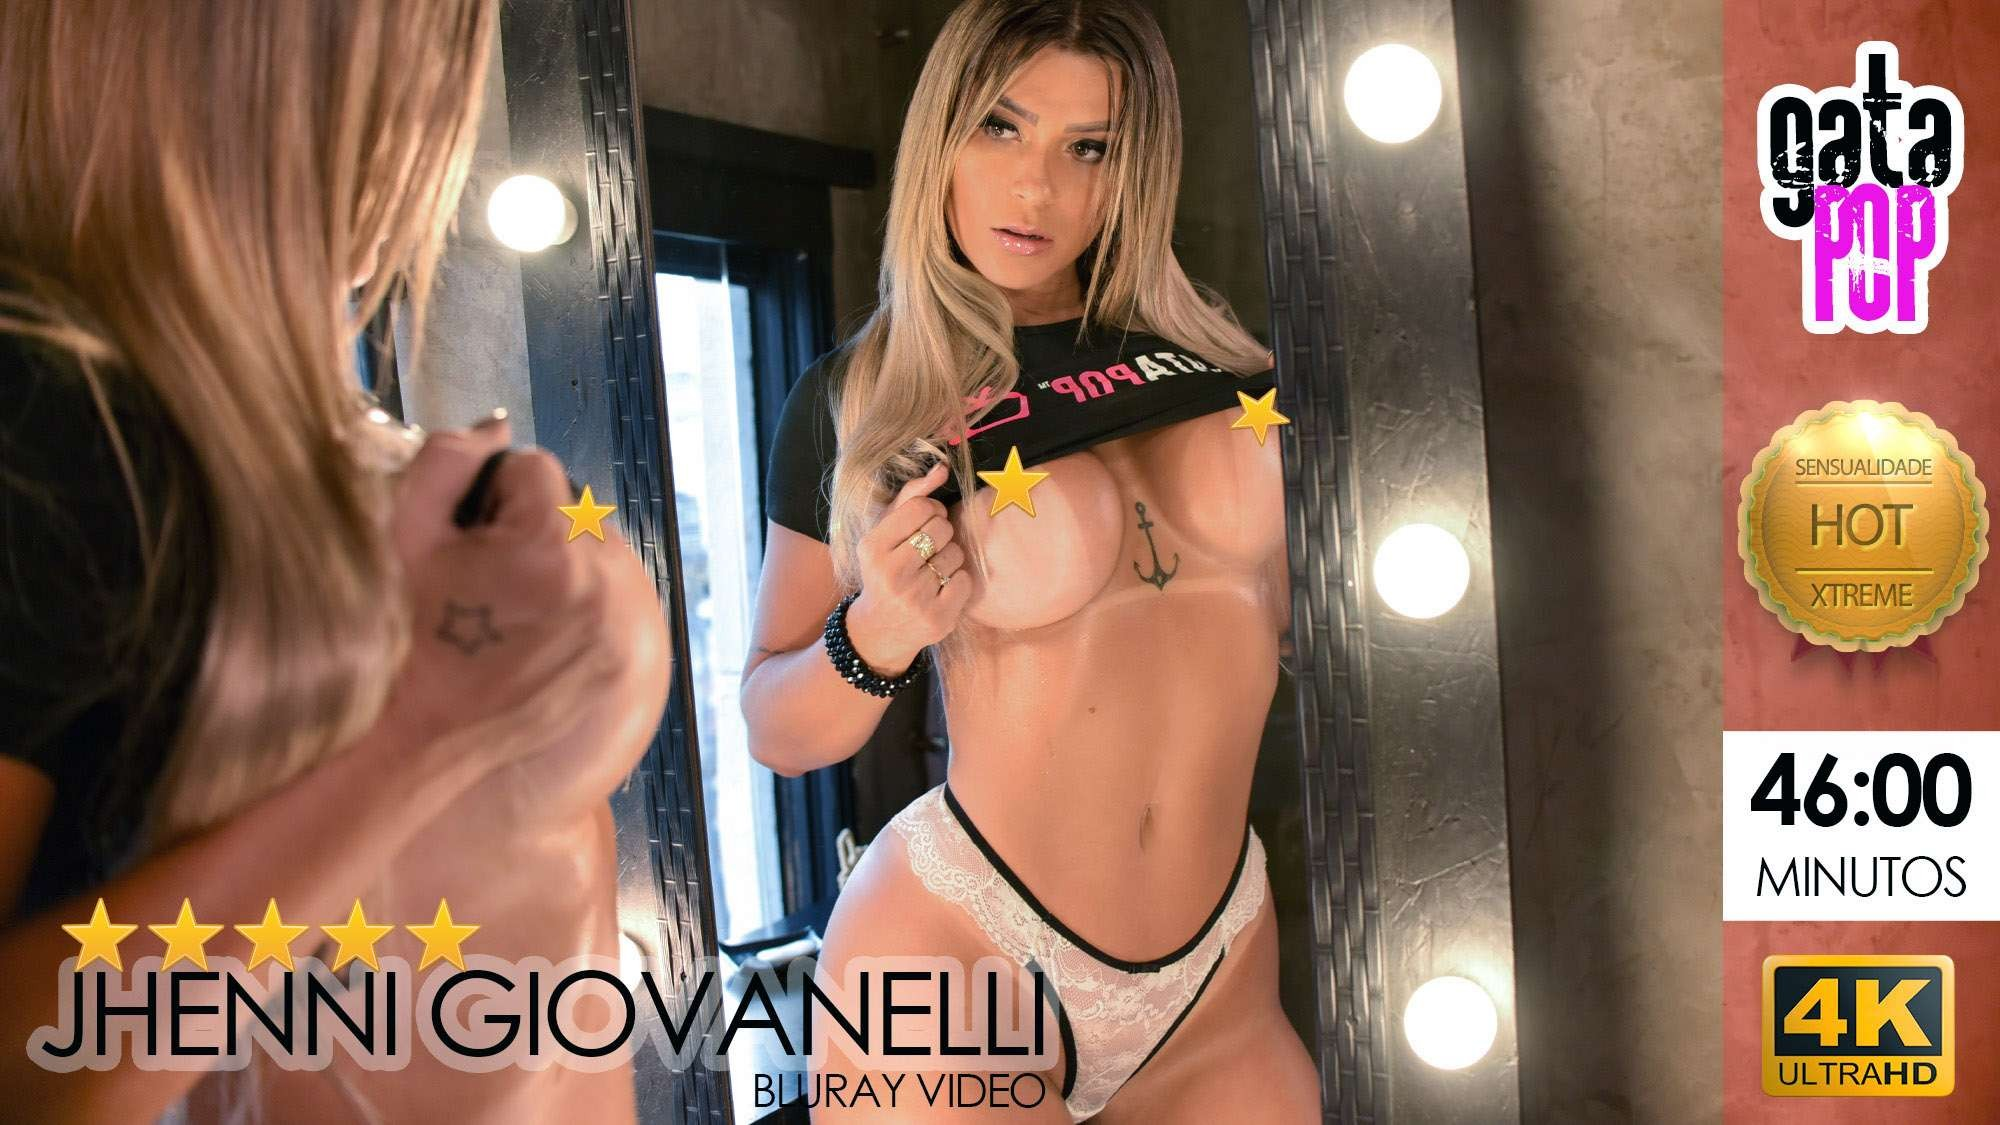 Jhenni Giovanelli - Bluray